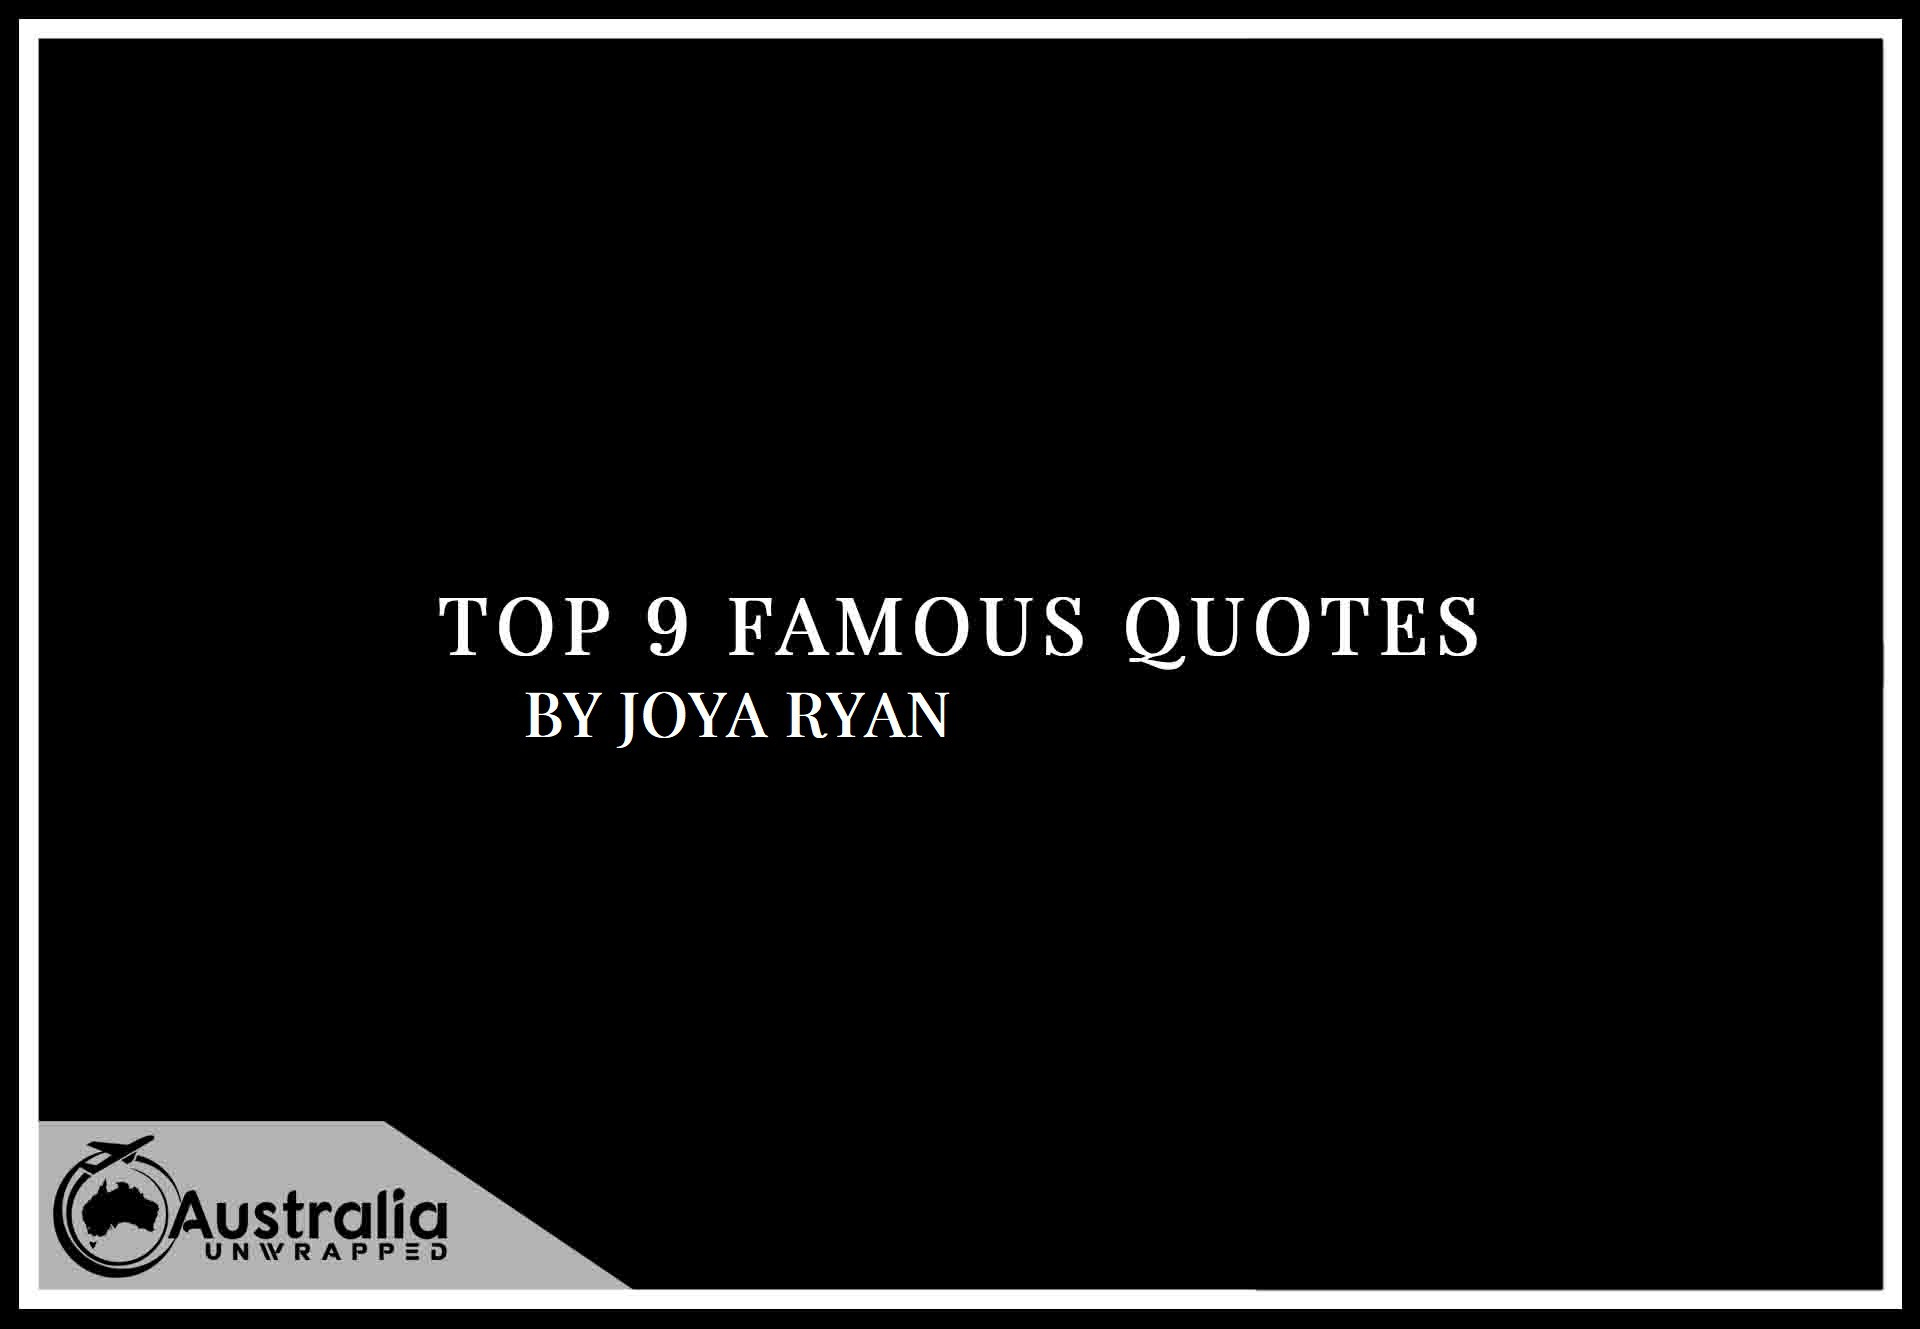 Top 9 Famous Quotes by Author Joya Ryan